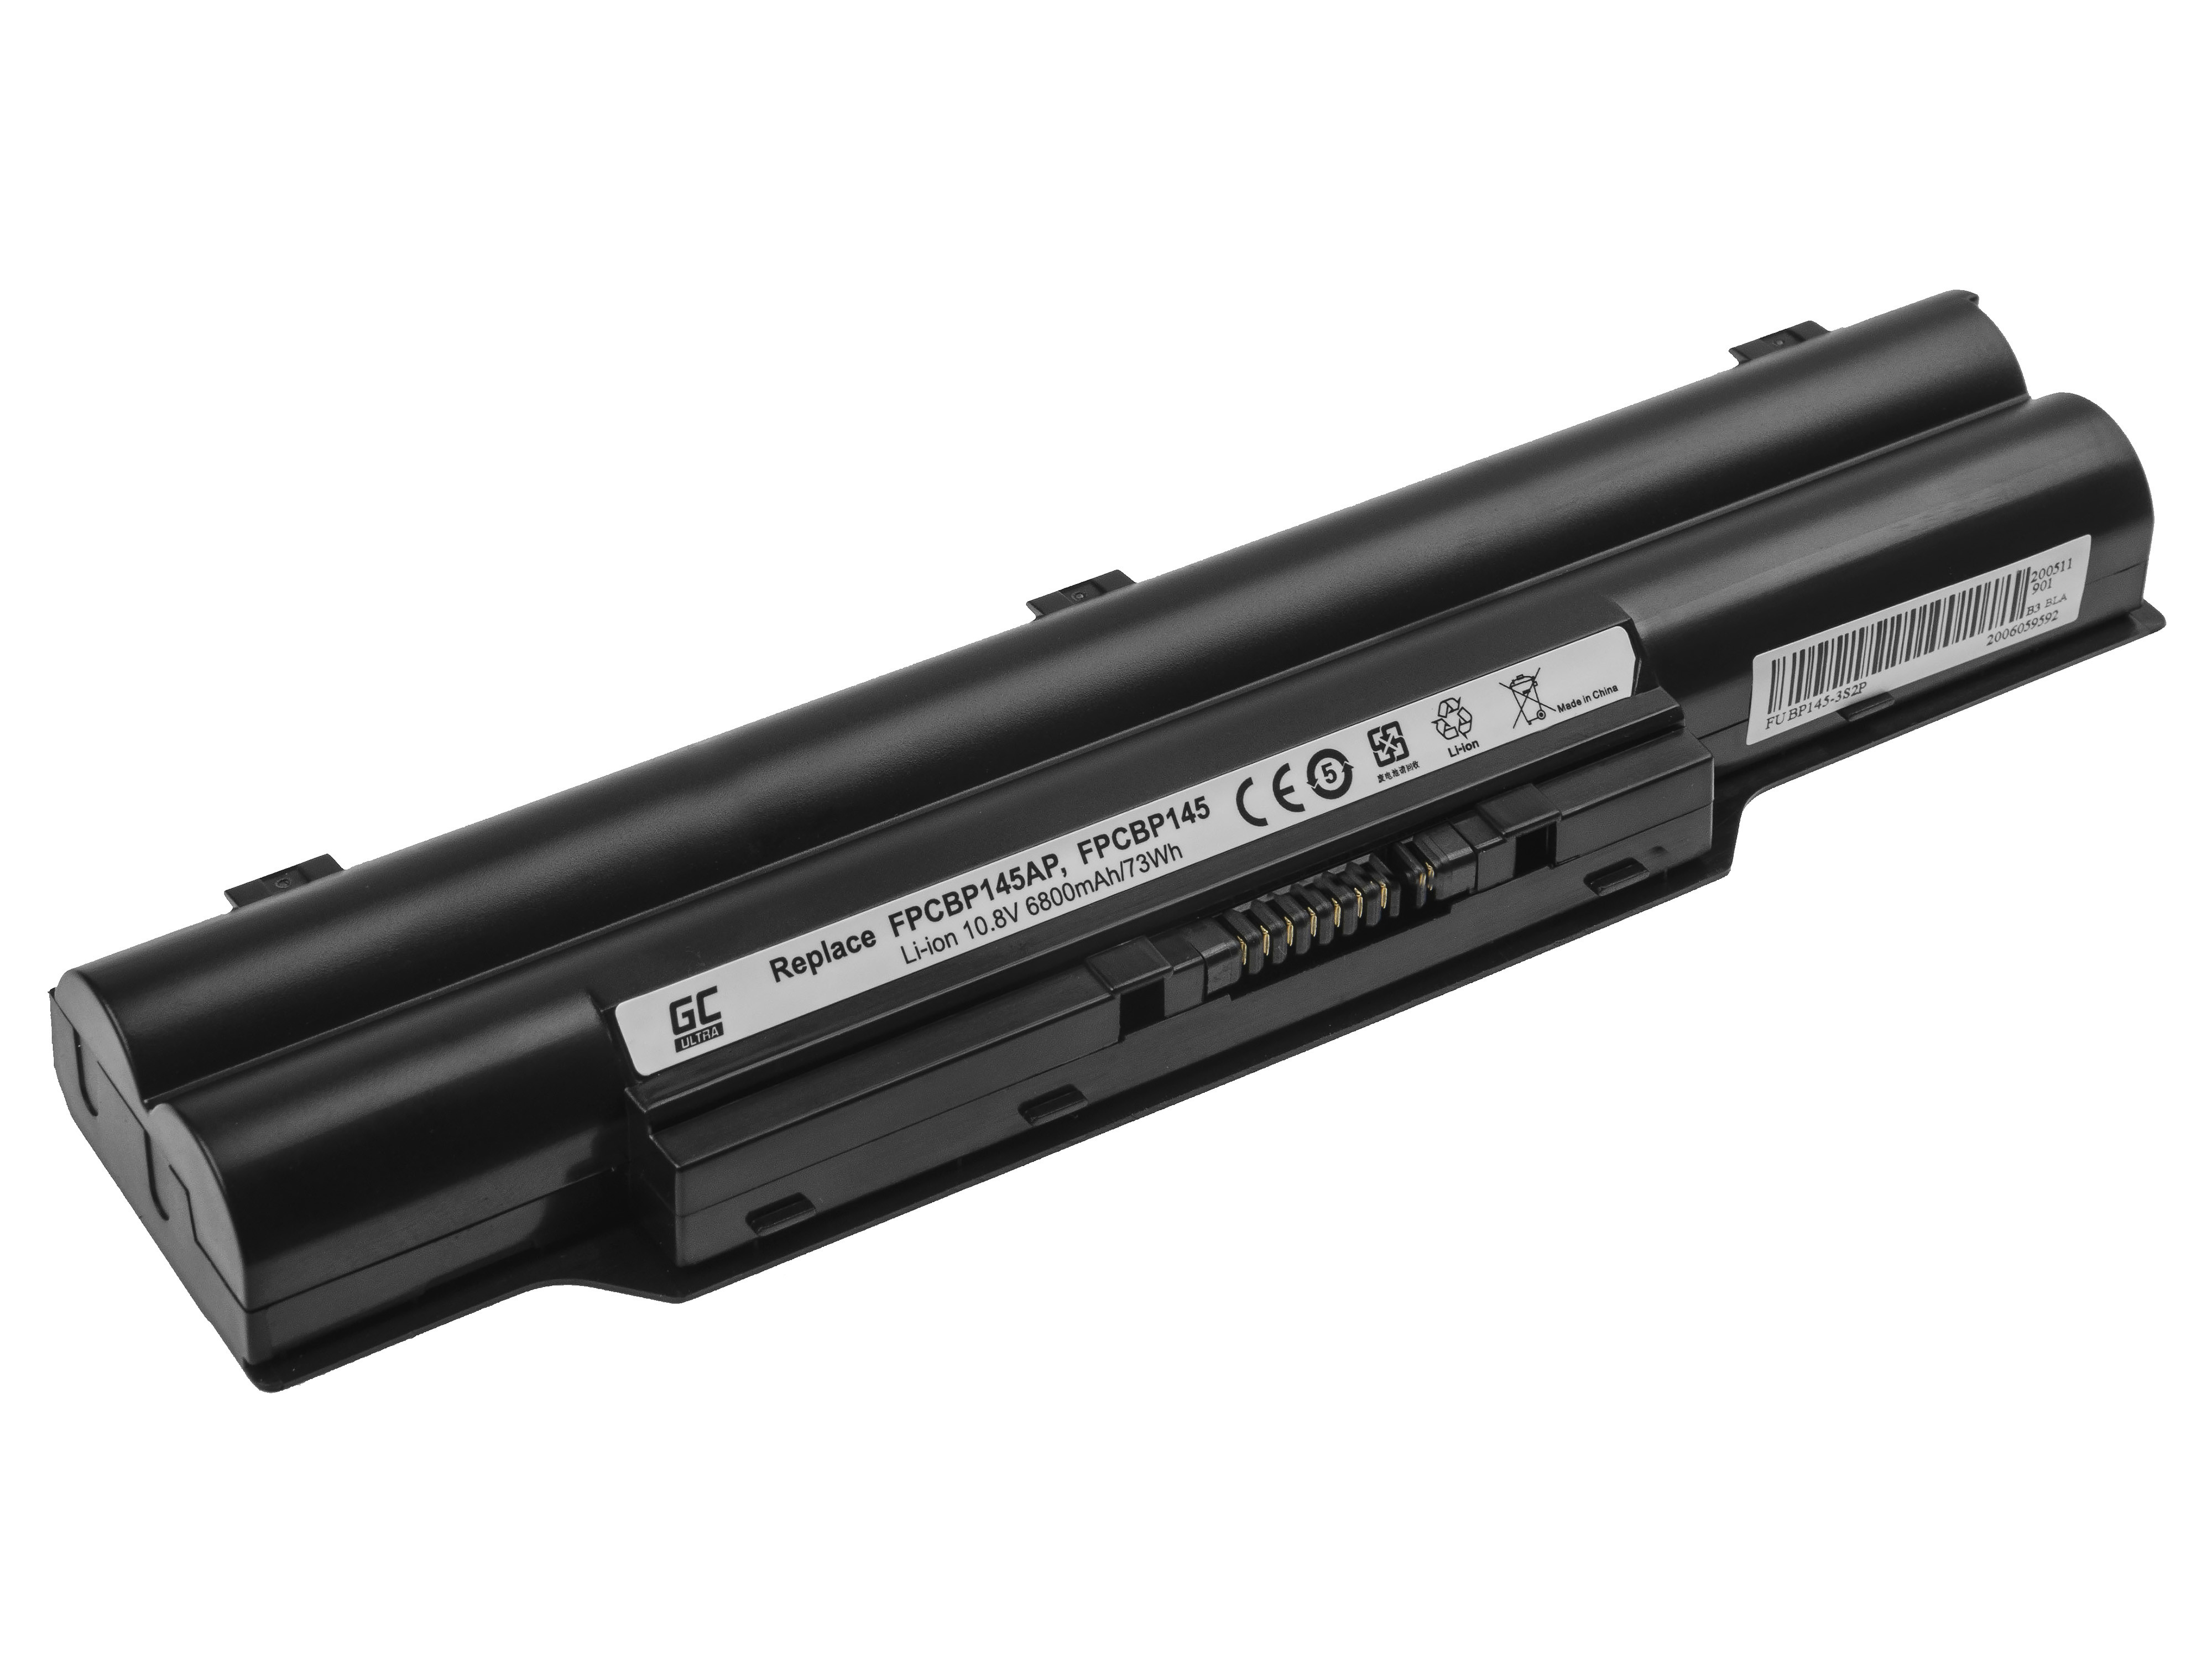 Green Cell ULTRA Baterie FPCBP145 FPCBP282 pro Fujitsu LifeBook E751 E752 E781 E782 P770 P771 P772 S710 S751 S752 S760 S761 S762